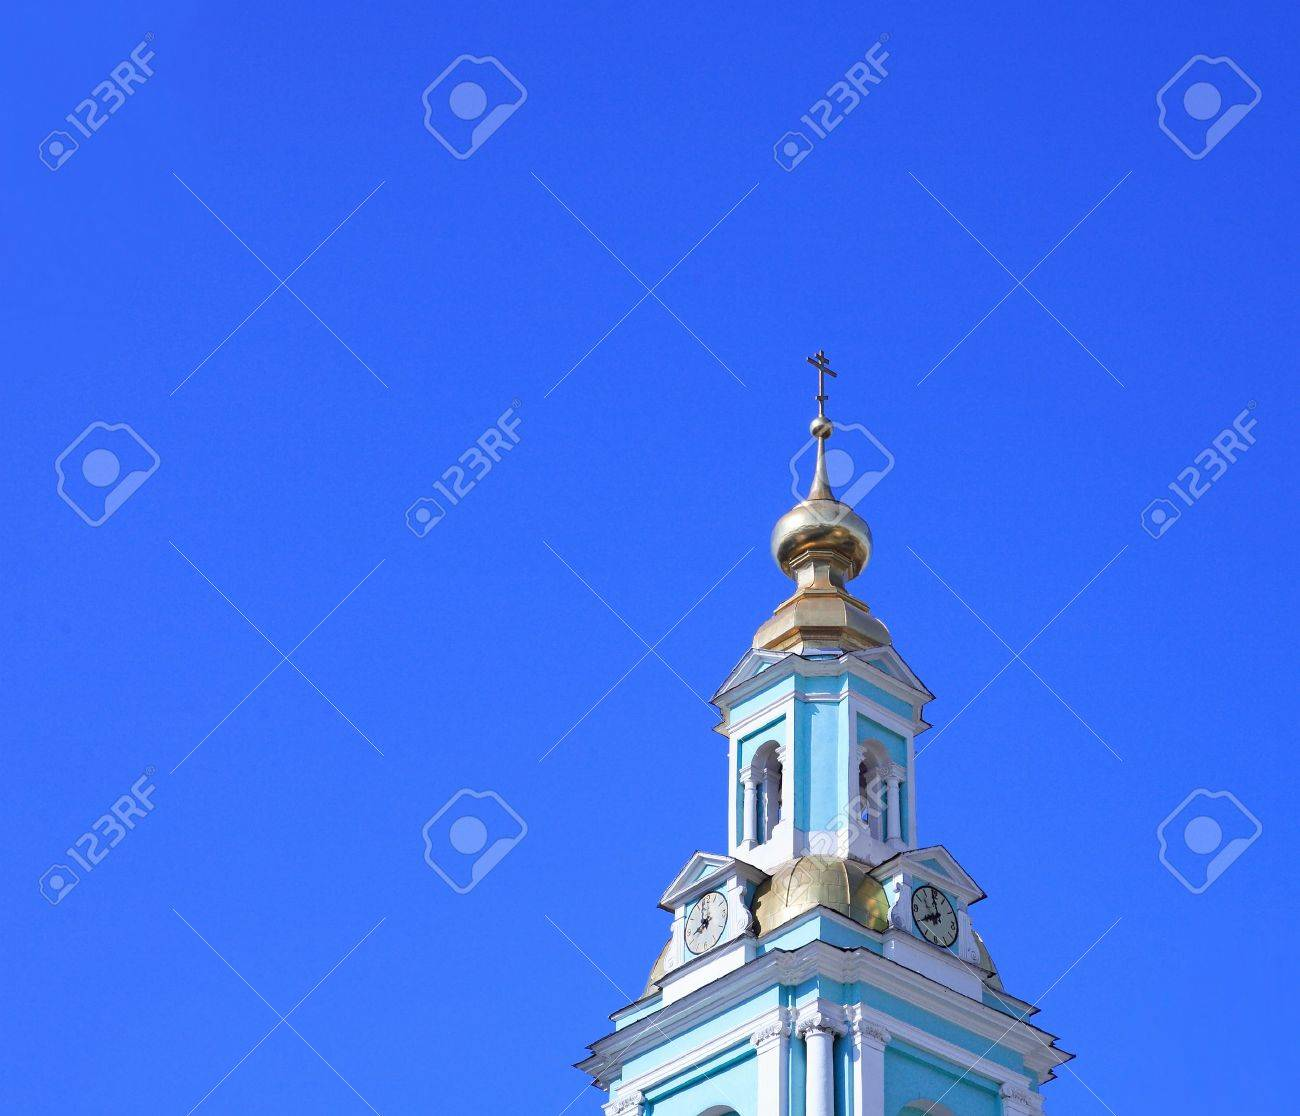 chapel tower in city center on sky background Stock Photo - 2340001